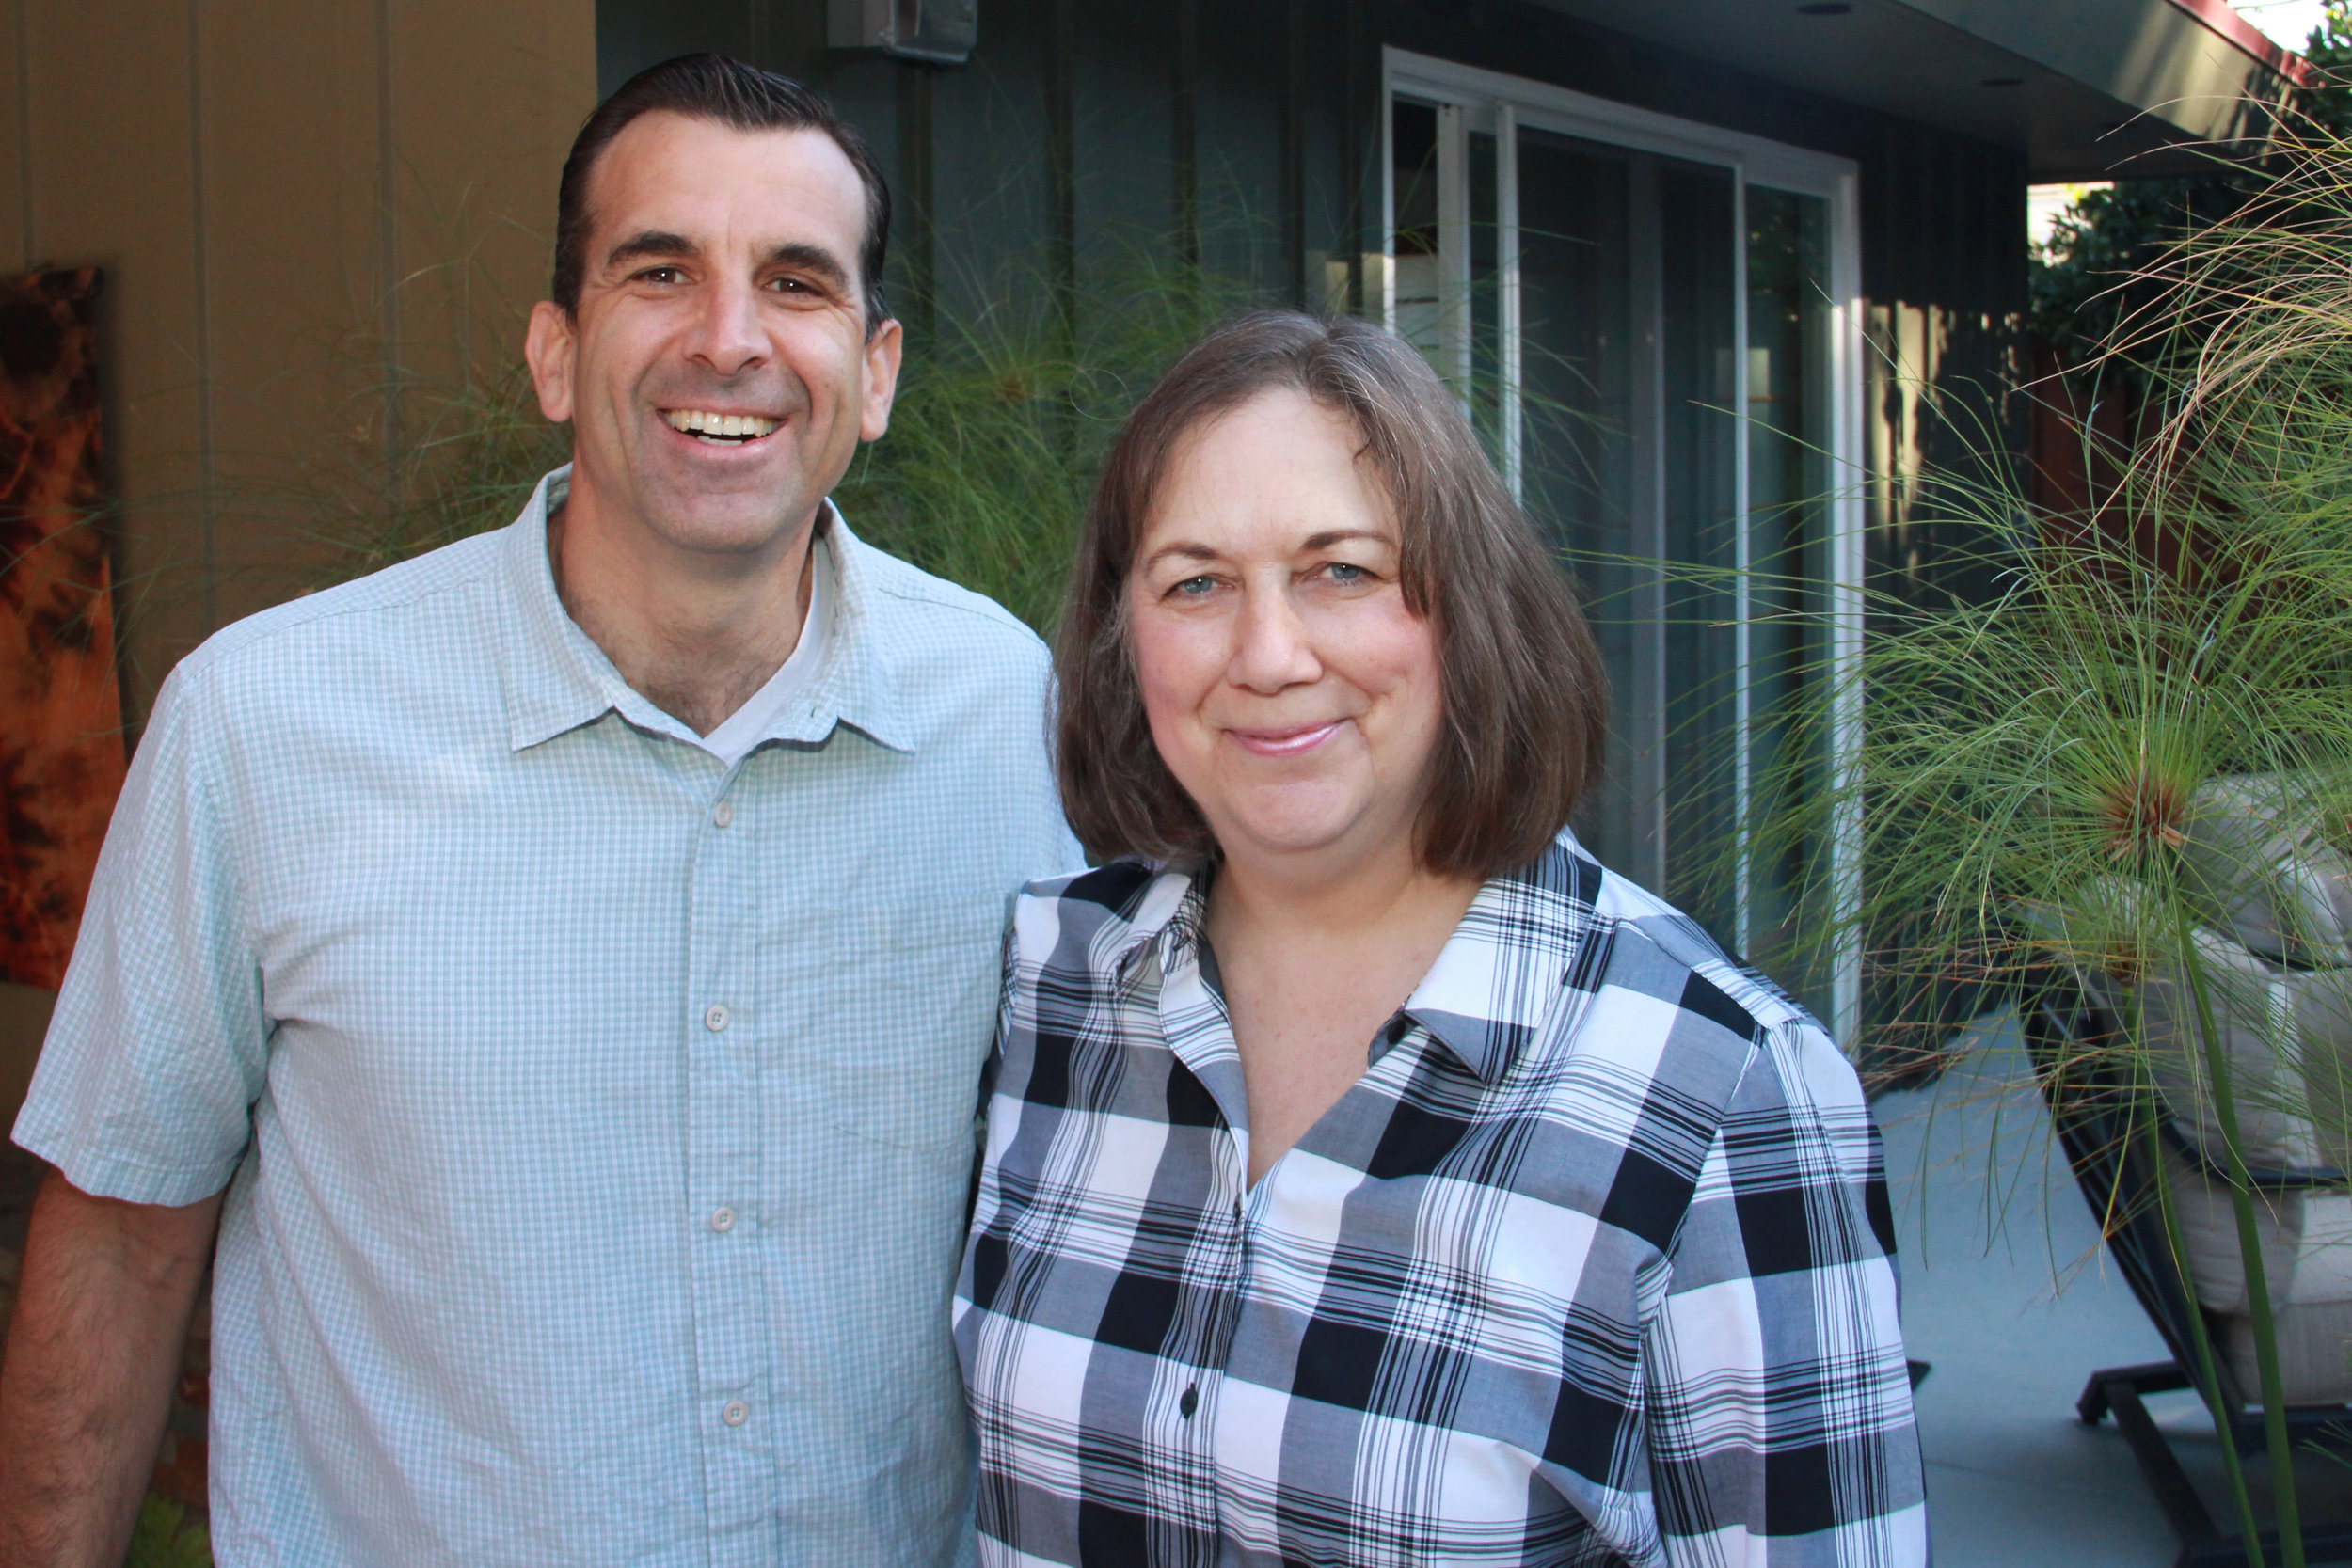 """""""My years of working with Pam Foley convince me that her intellect, integrity, and leadership skills will make her an excellent councilmember, and San Jose will be better for her service."""" ~   Mayor Sam Liccardo"""